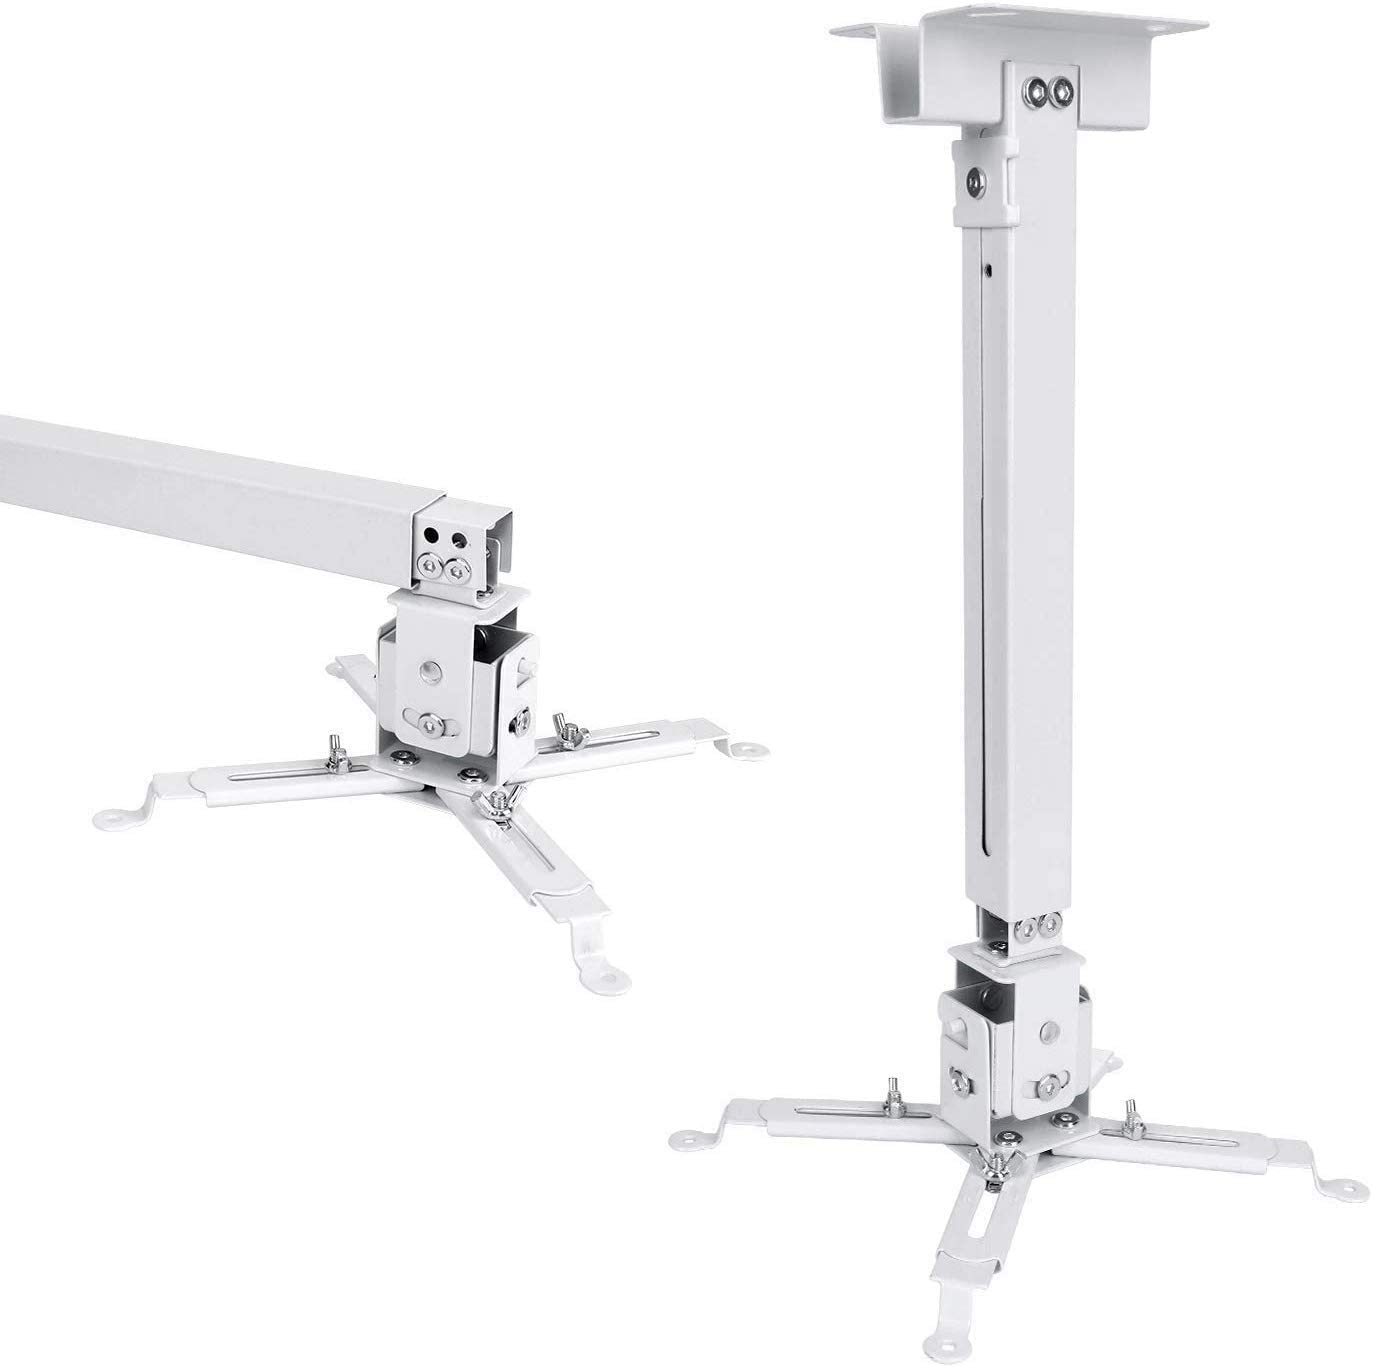 JIFAR Universal LED HD Projector Ceiling Mount Wall Bracket Holder for Different Size Projector